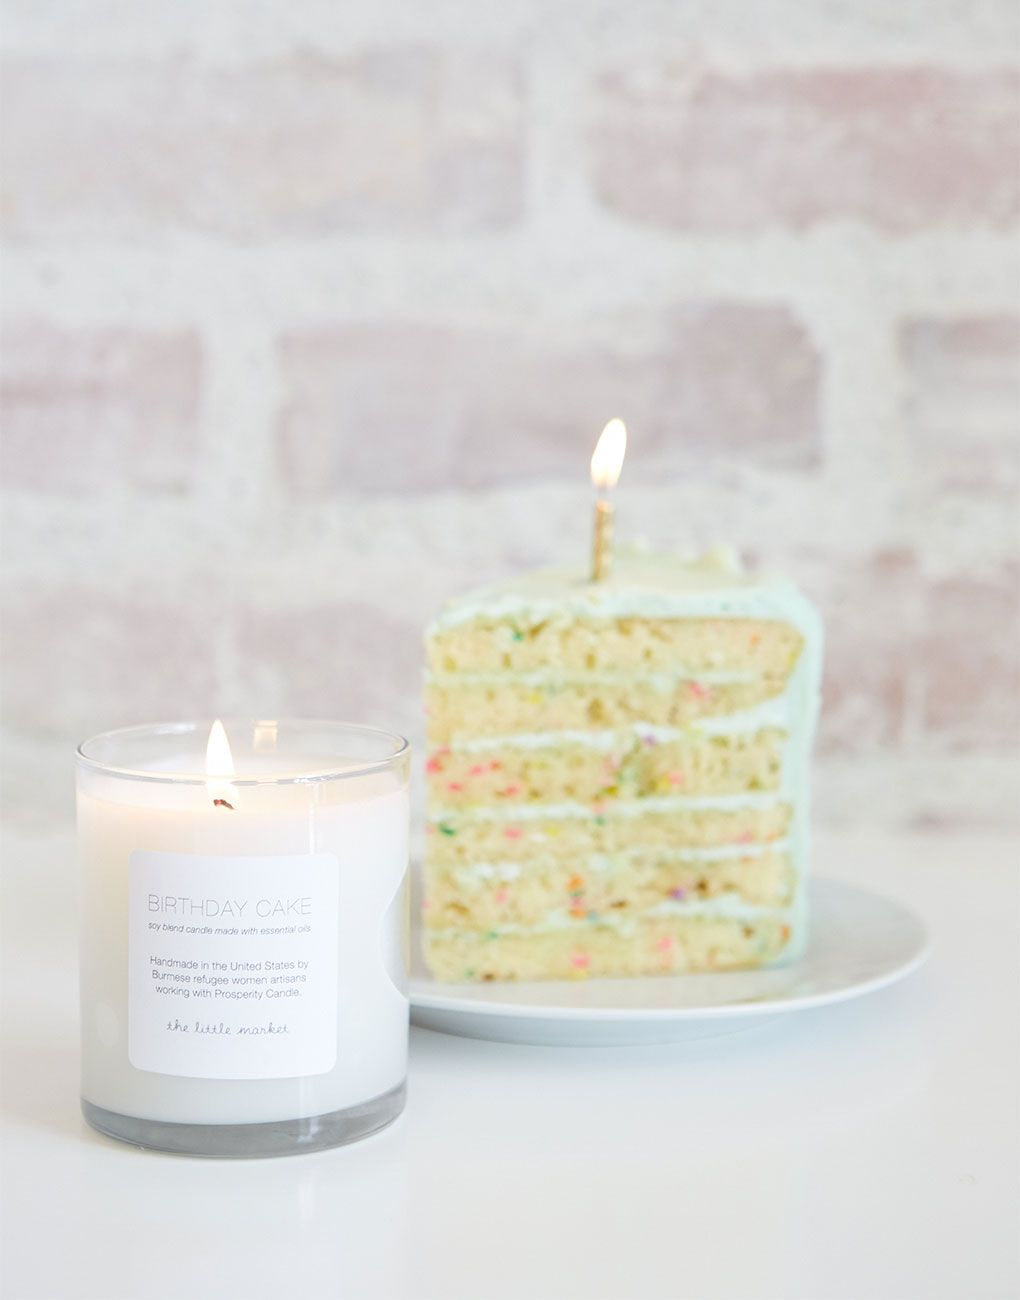 make every day your birthday birthday cake scented candle give